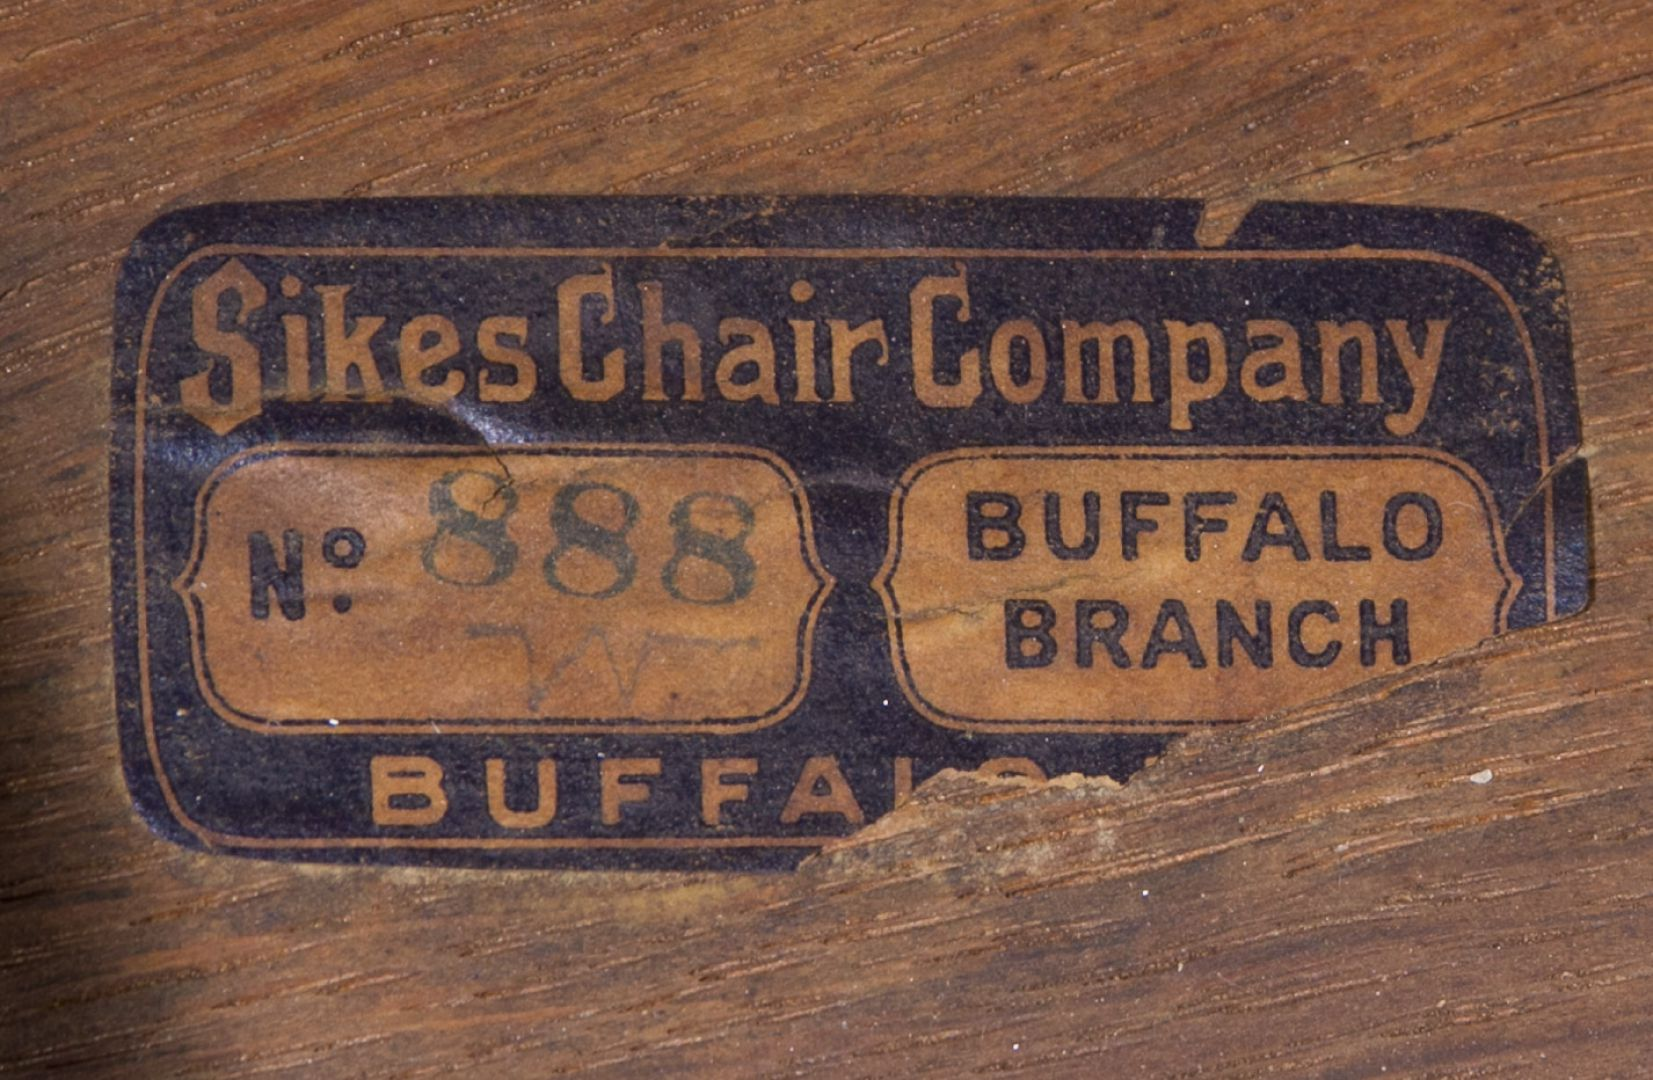 sikes chair company desk white lot 32 oak chairs by leonard auction sale 198 view 2